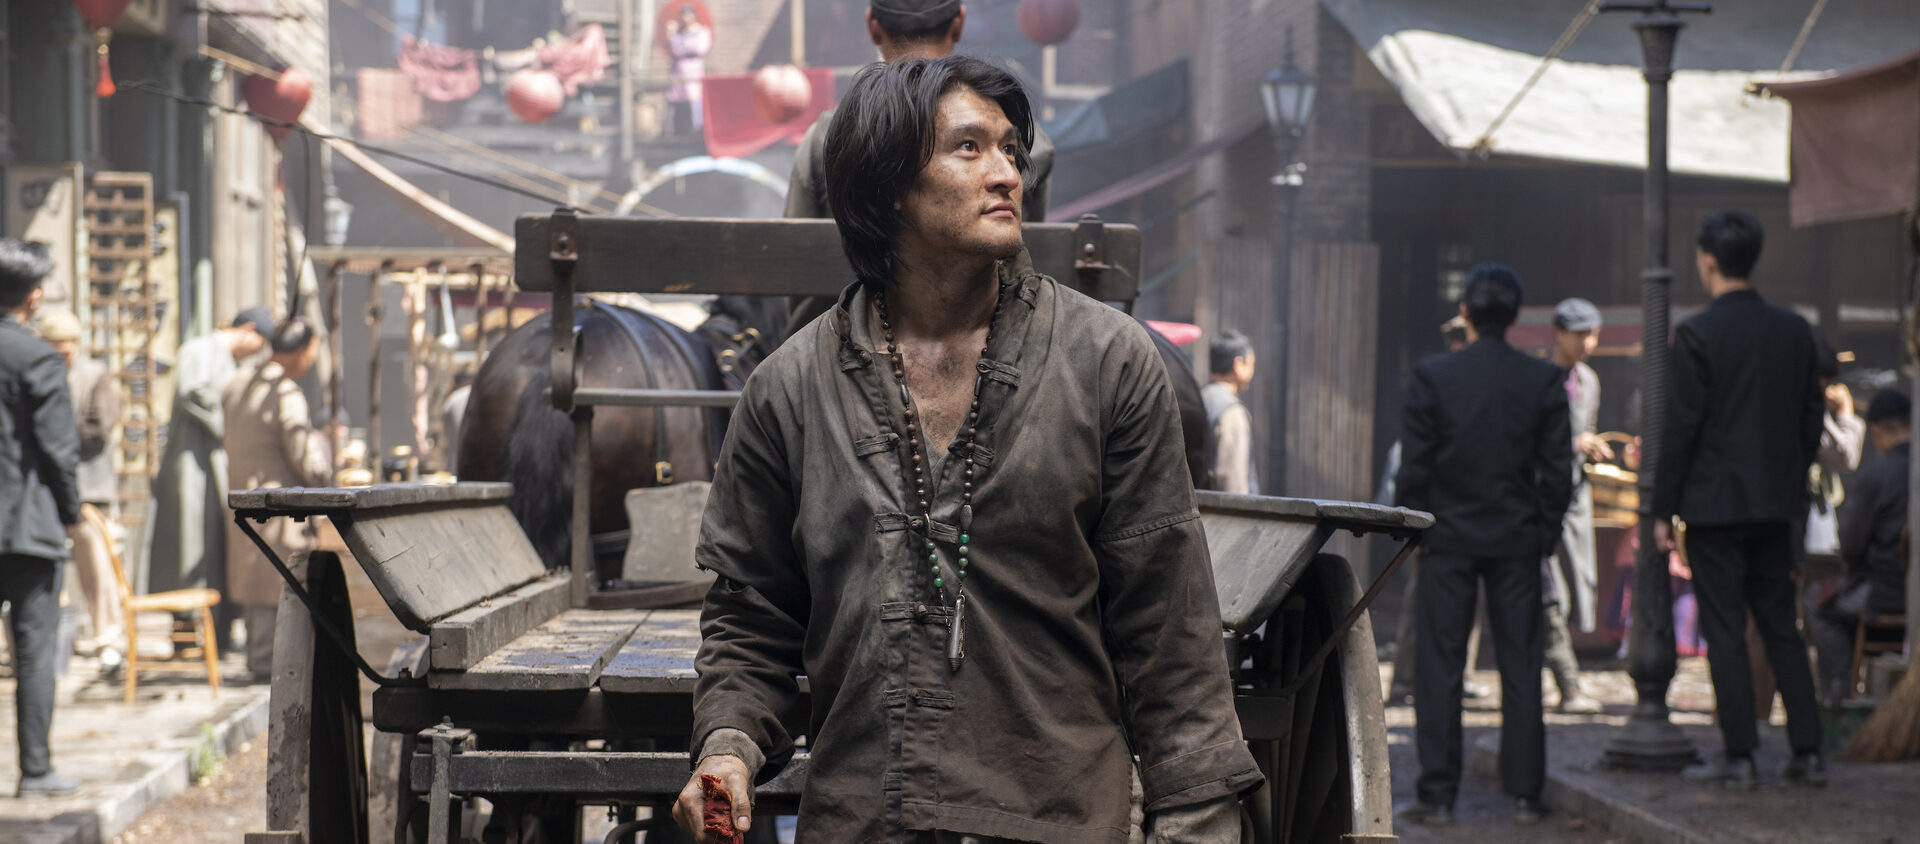 Hong played by Chen Tang